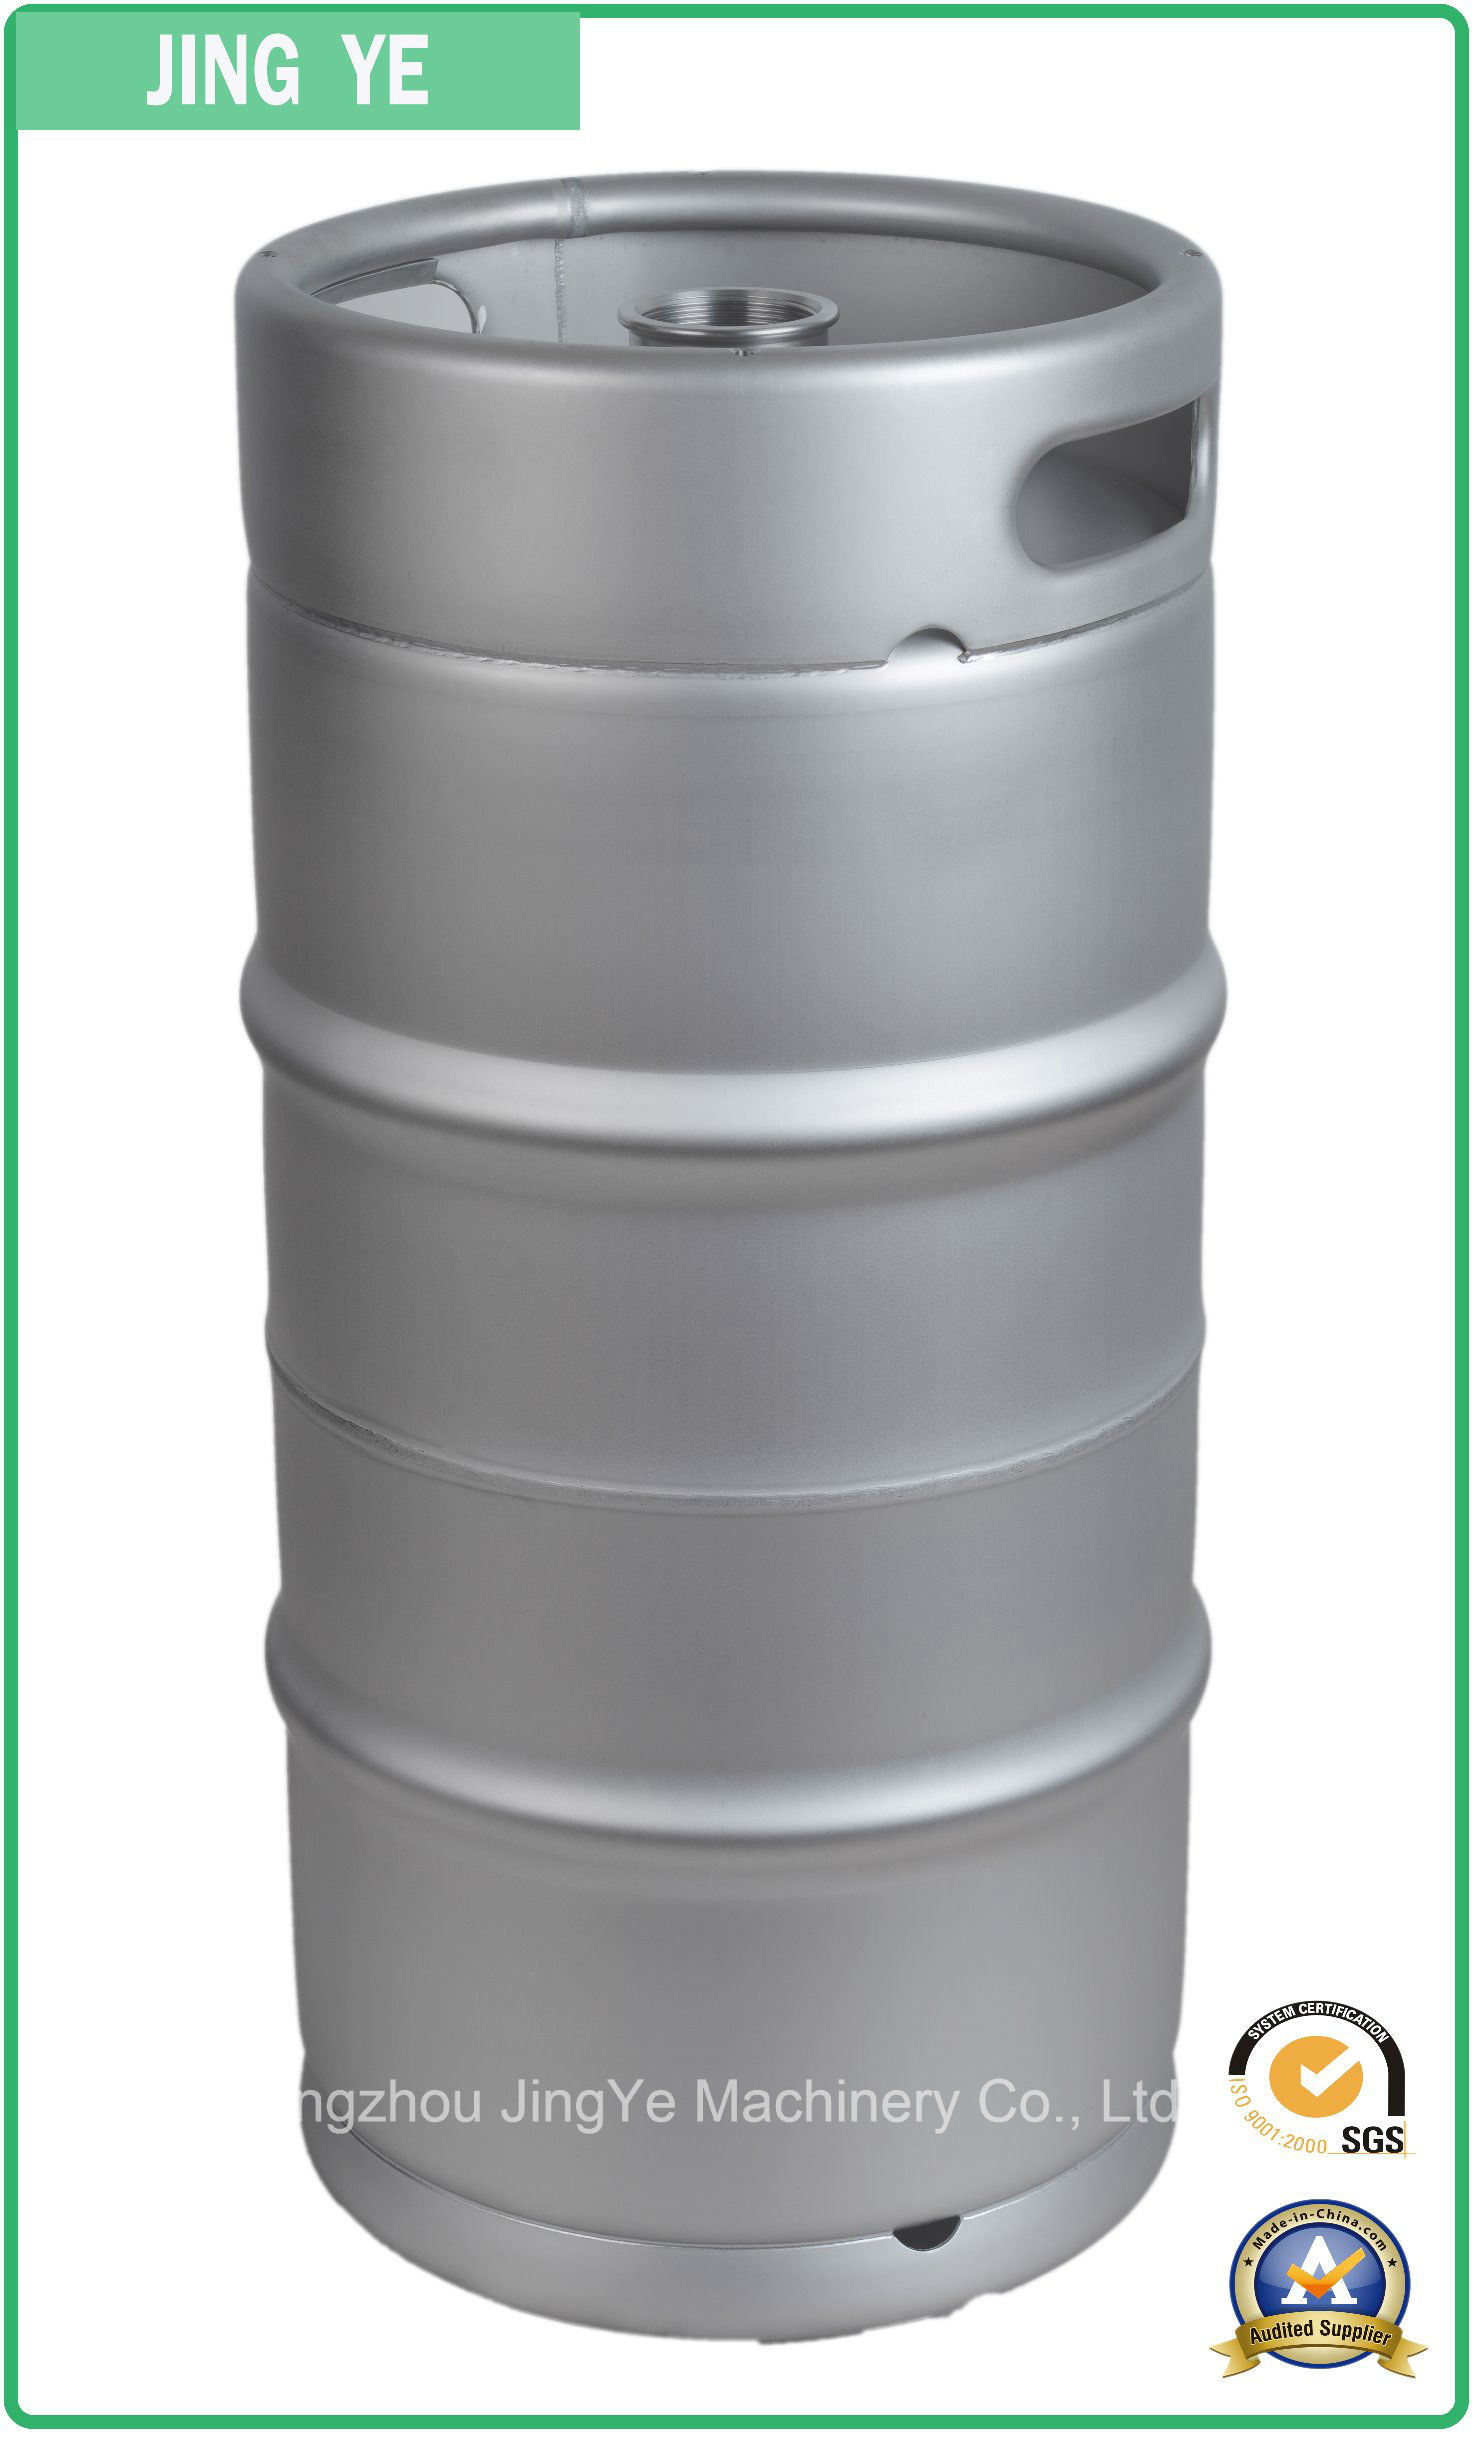 Us 1/4 Stackable Beer Keg 29.8L